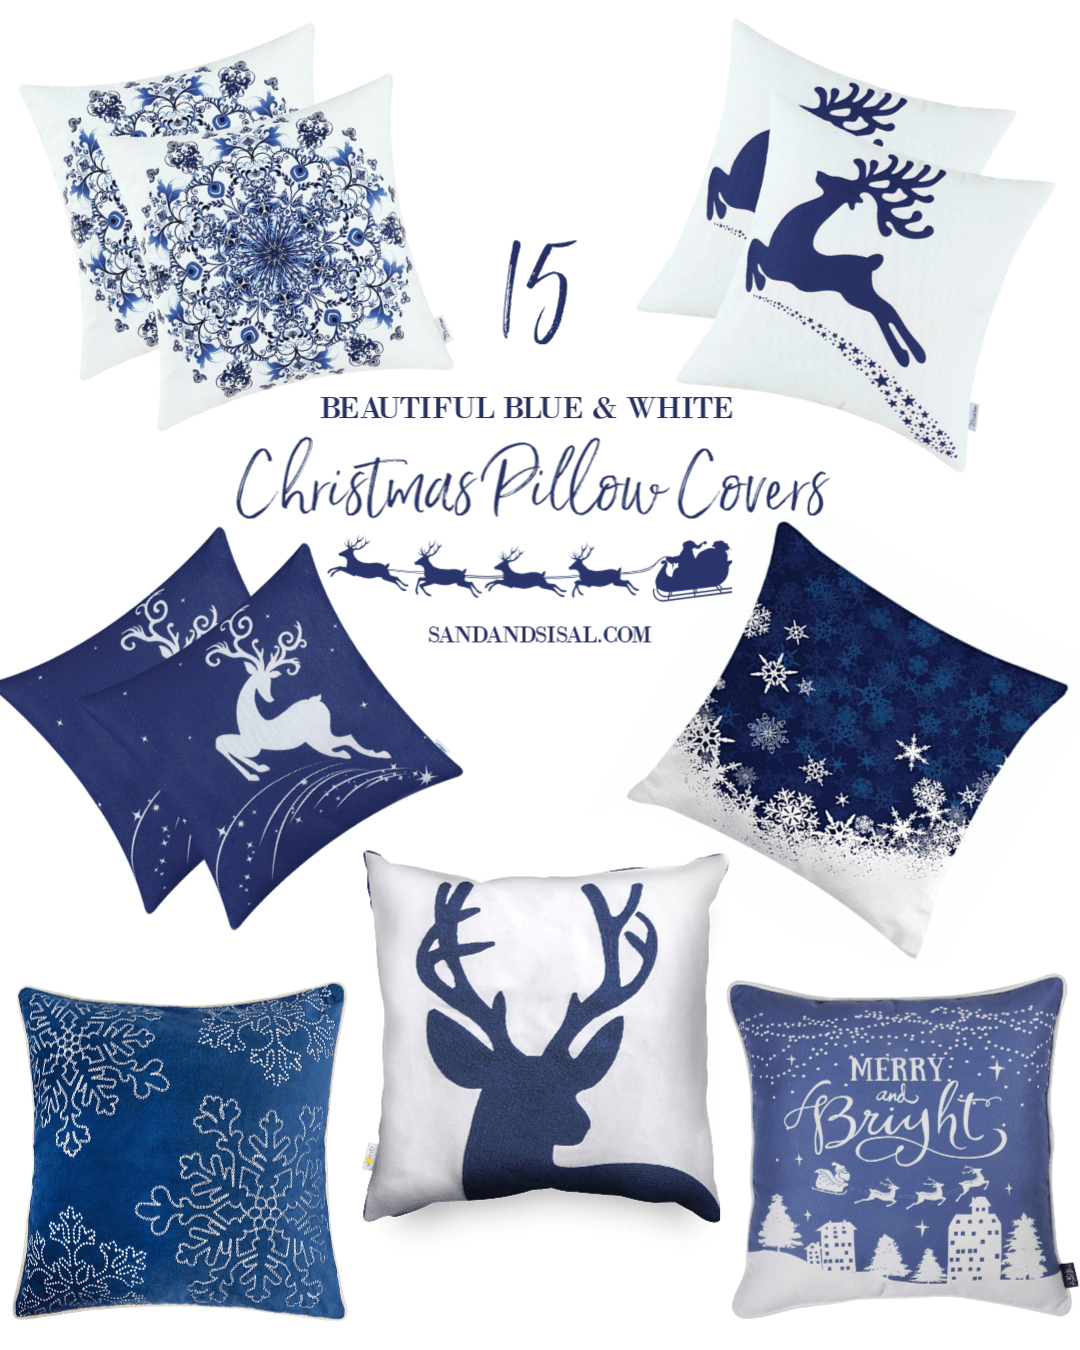 15 Beautiful Blue and White Christmas Pillow Covers